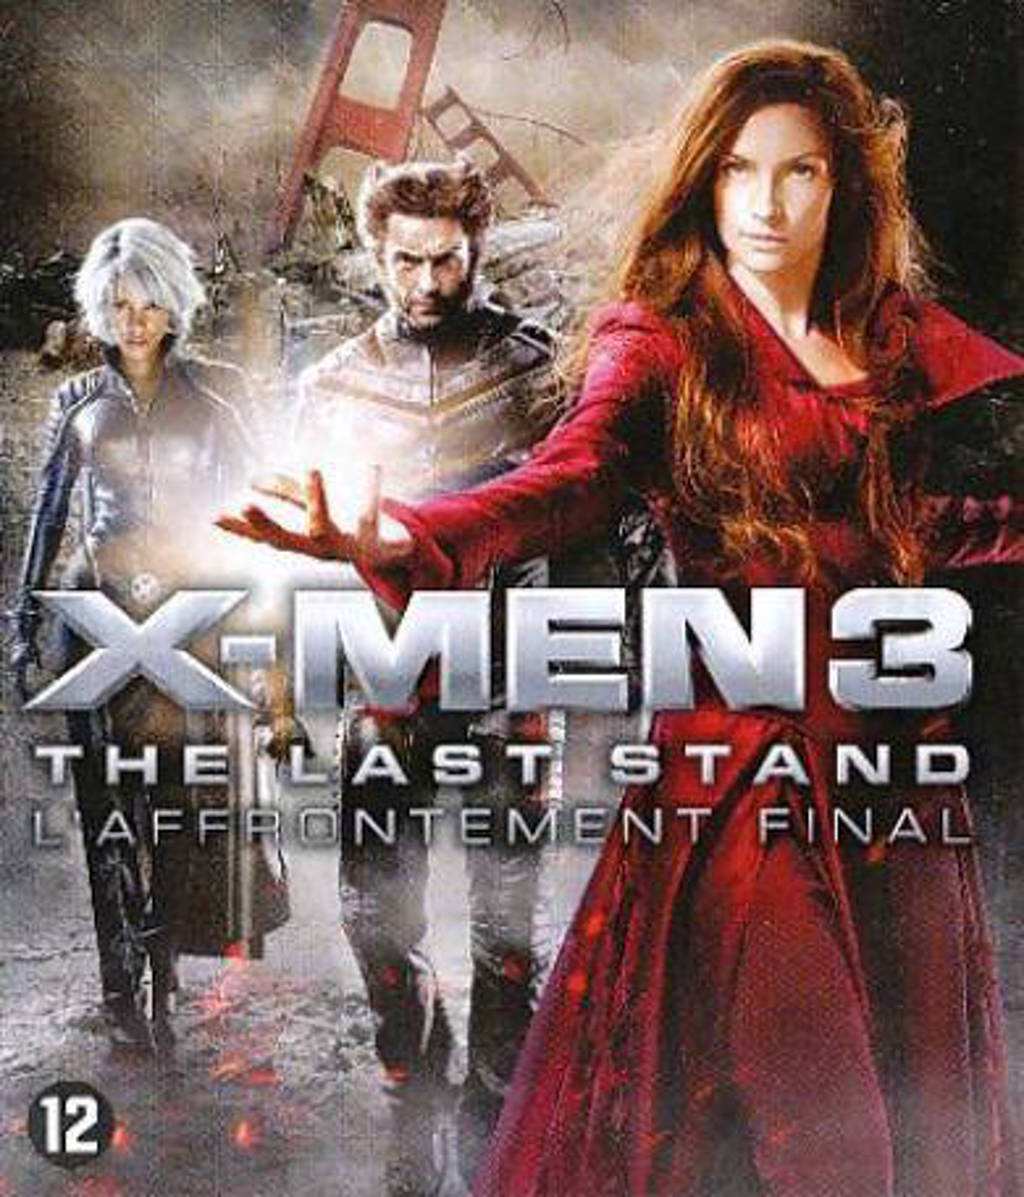 X-men 3 - The last stand (Blu-ray)